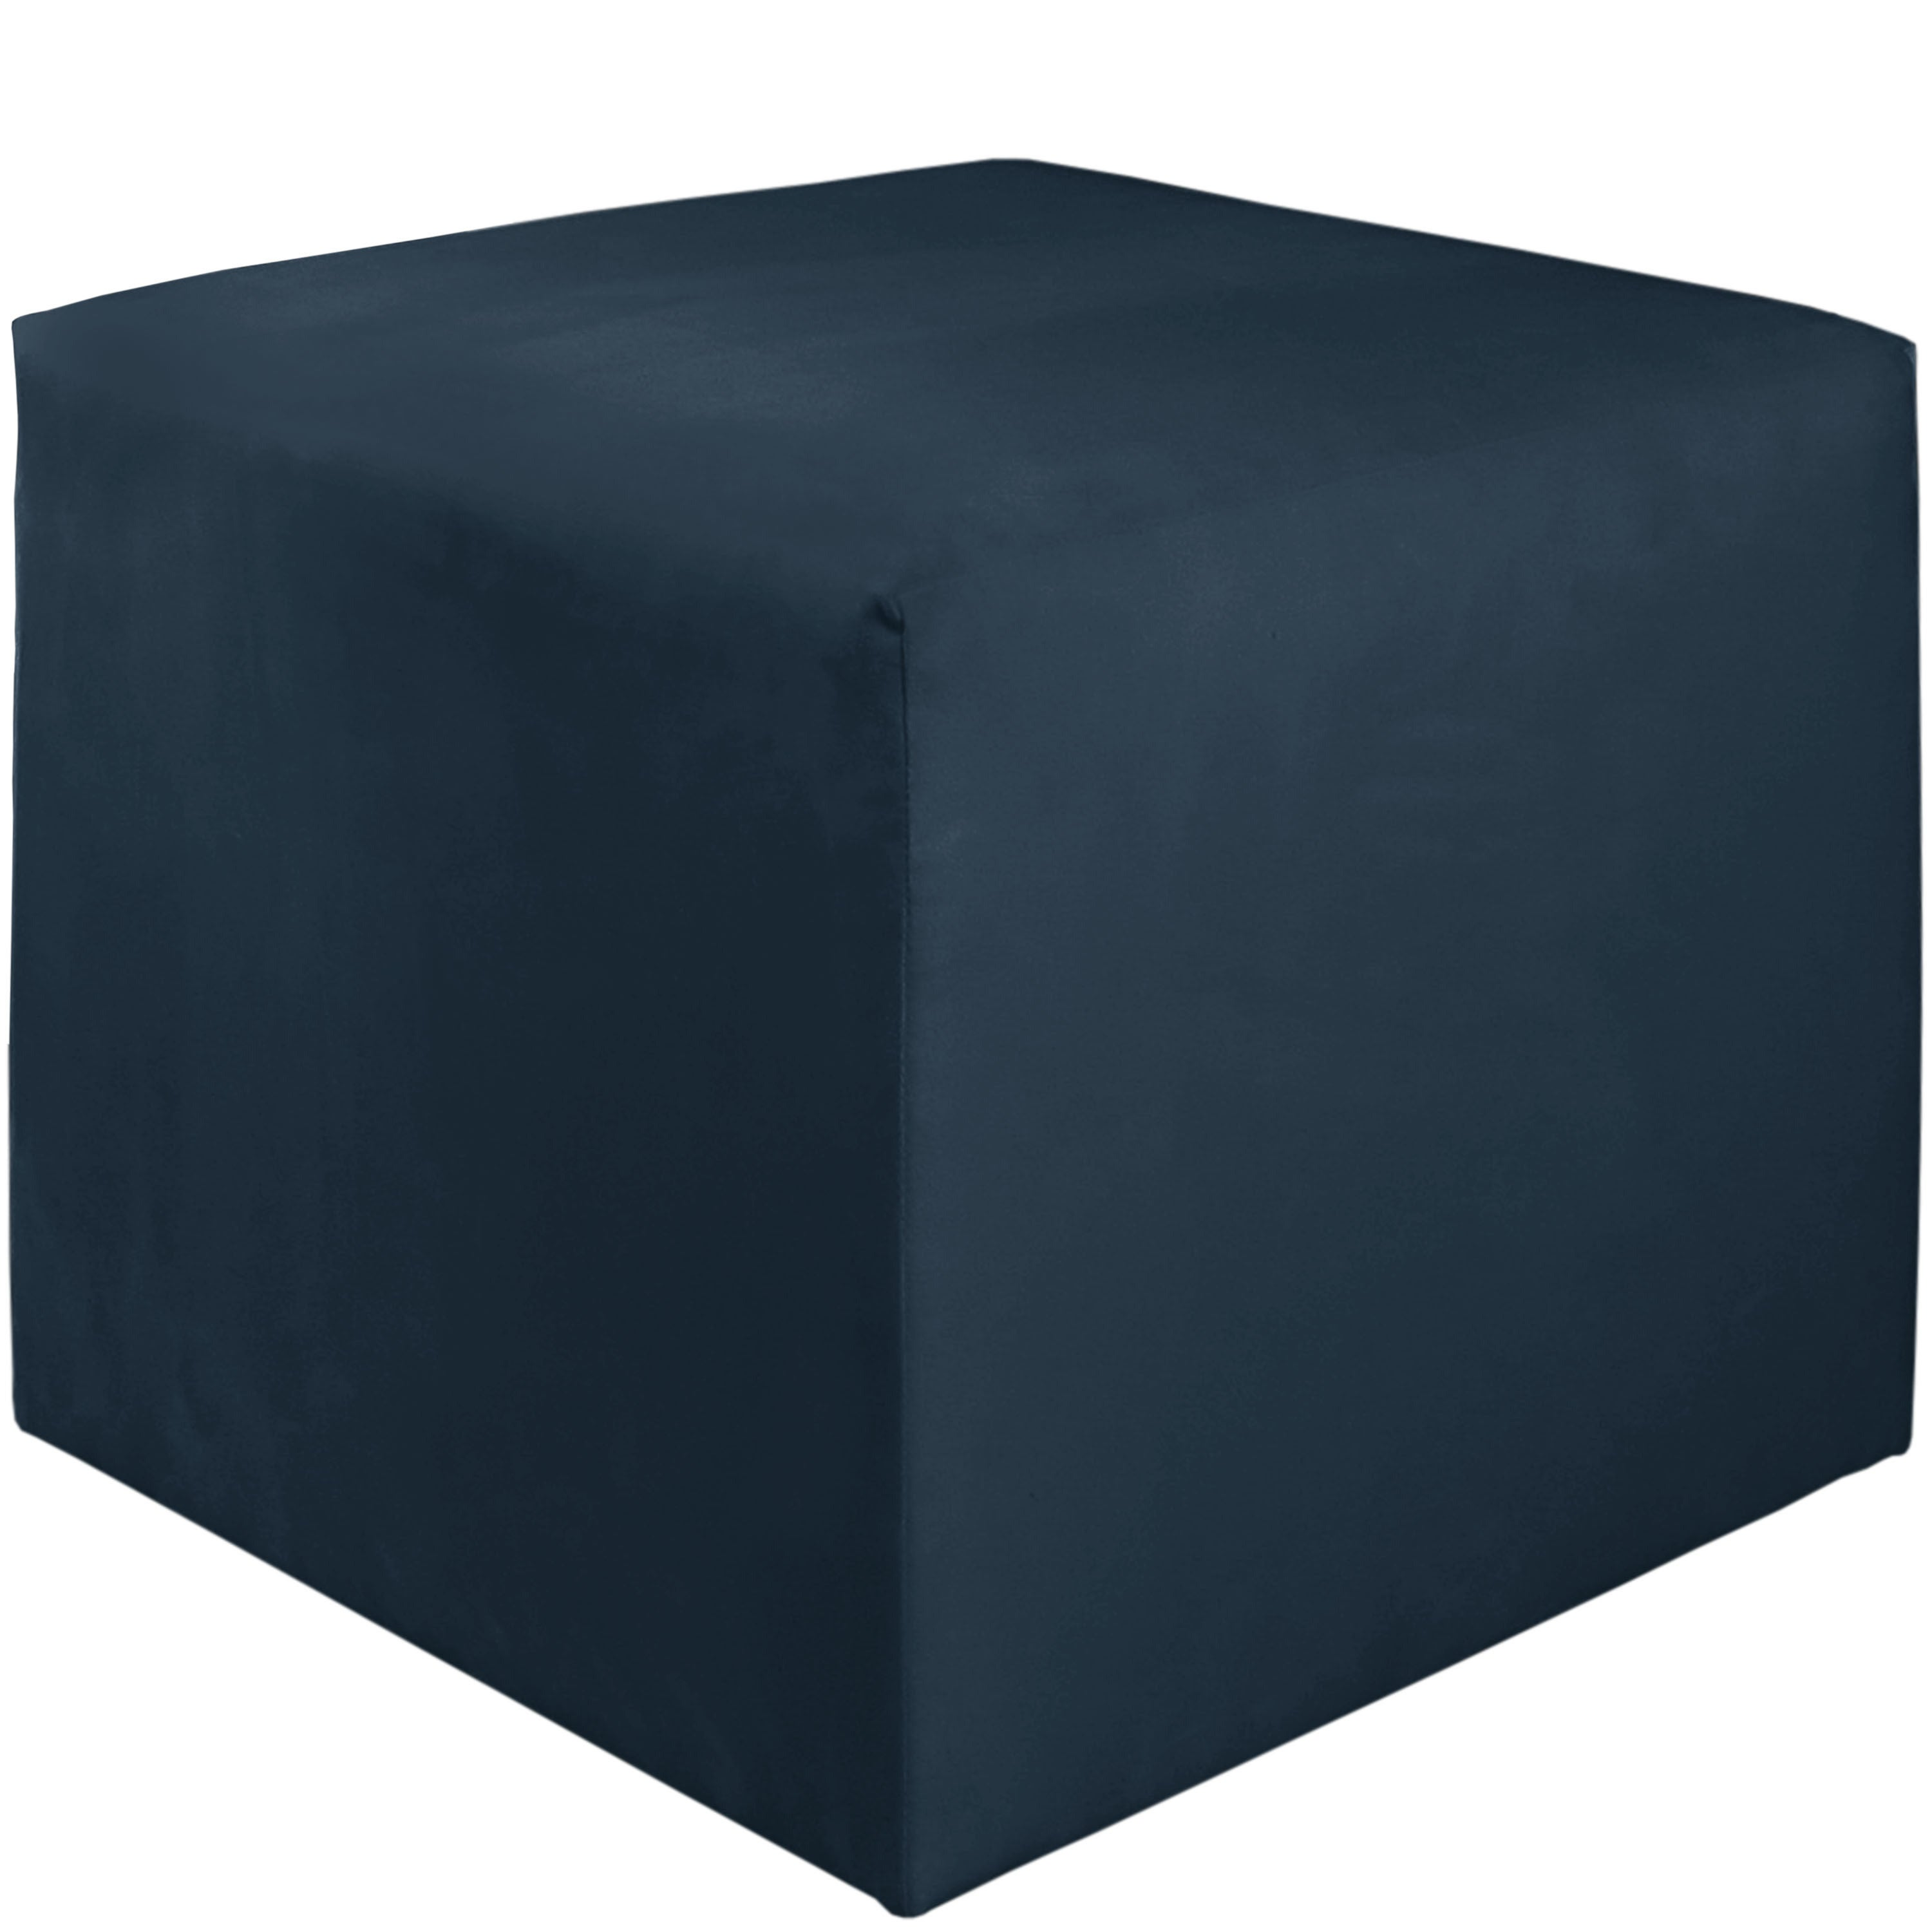 hooker iteminformation ethan furniture room silo ottoman square living